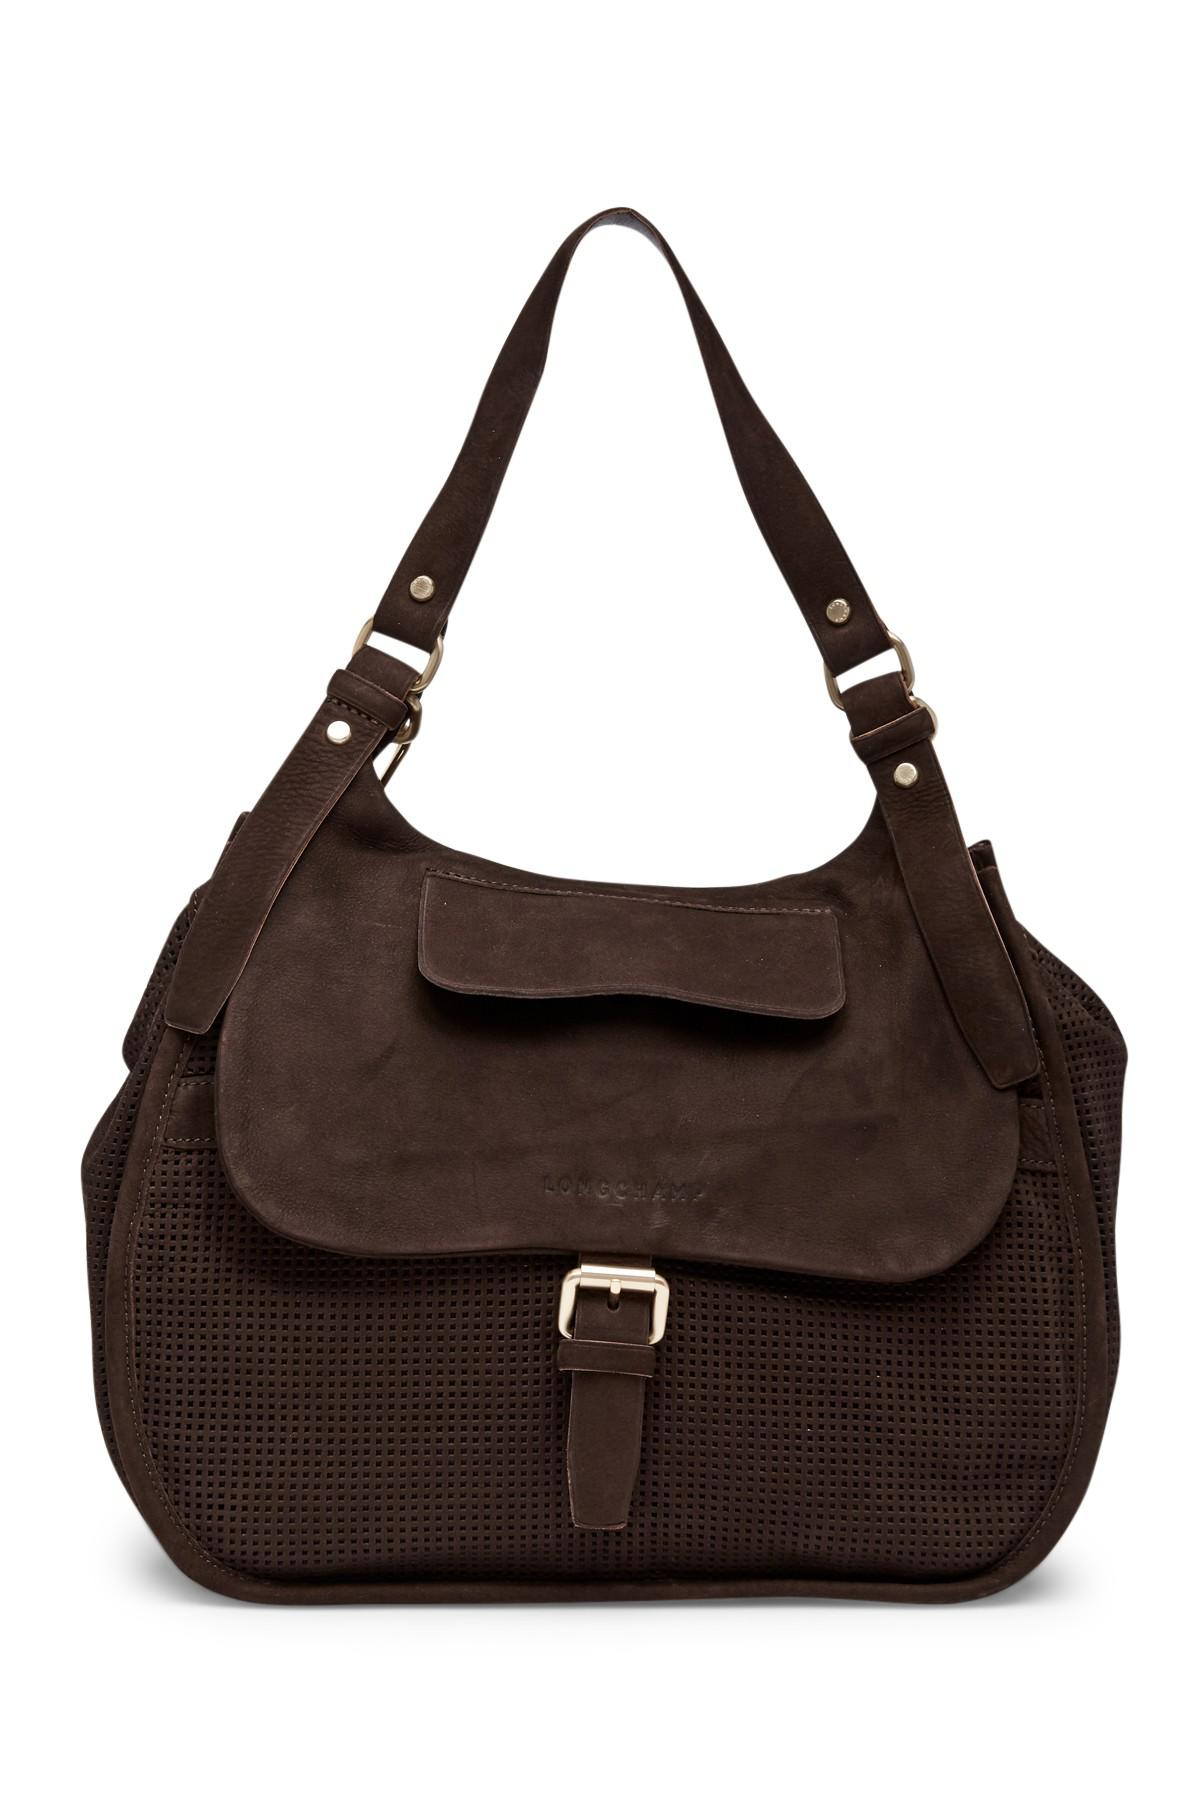 a7acce7b472 Lyst - Longchamp Balzane Perforated Suede Shoulder Bag in Brown